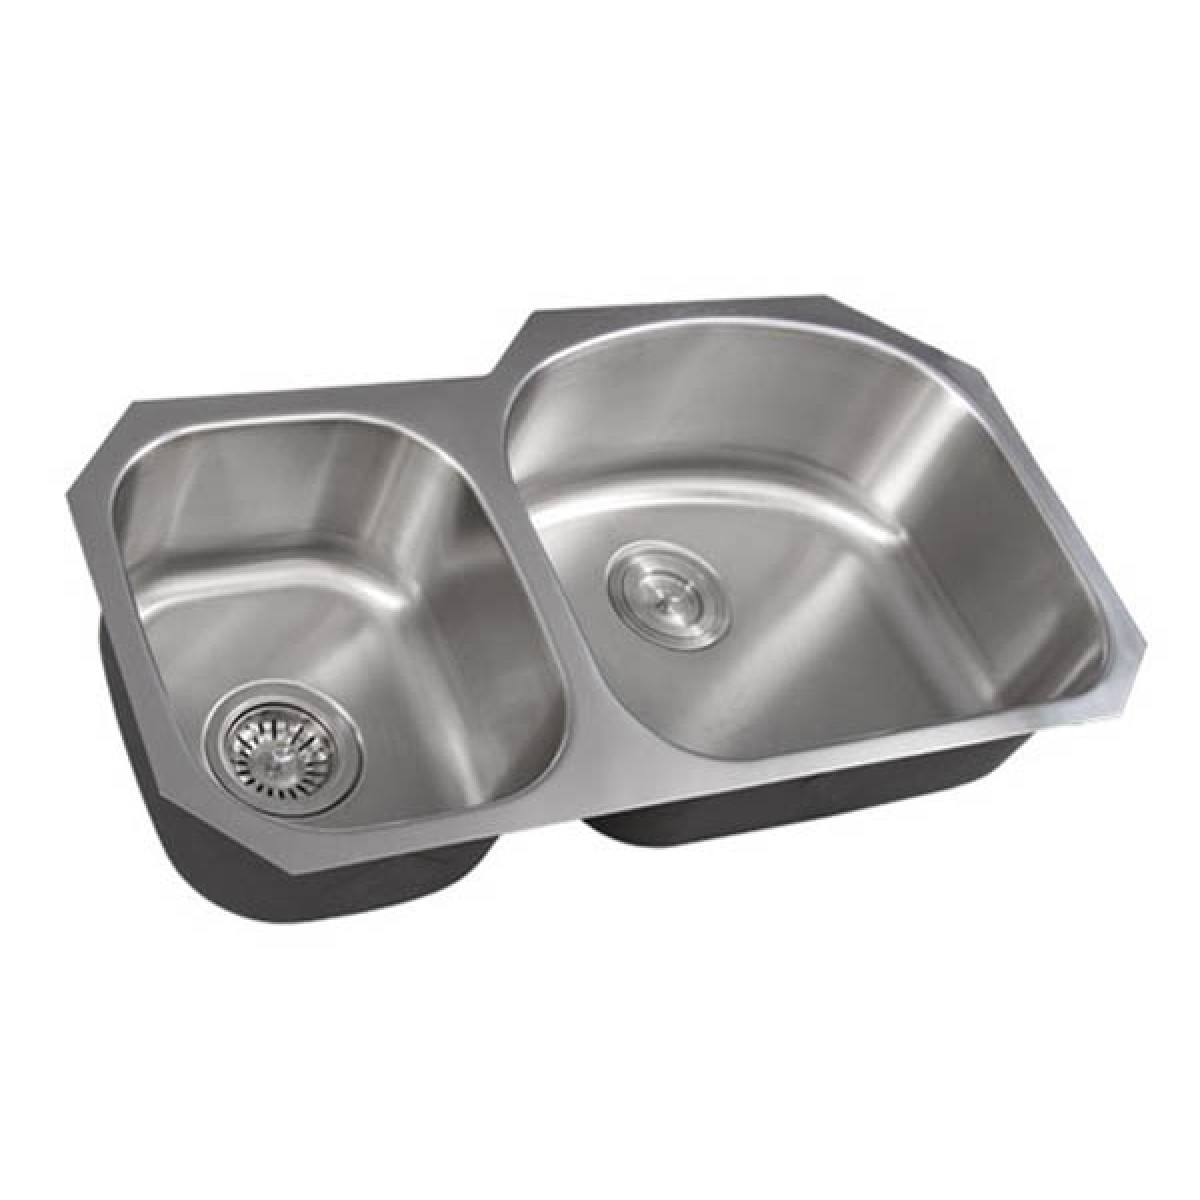 32 Inch Stainless Steel Undermount Double 40 60 D Bowl